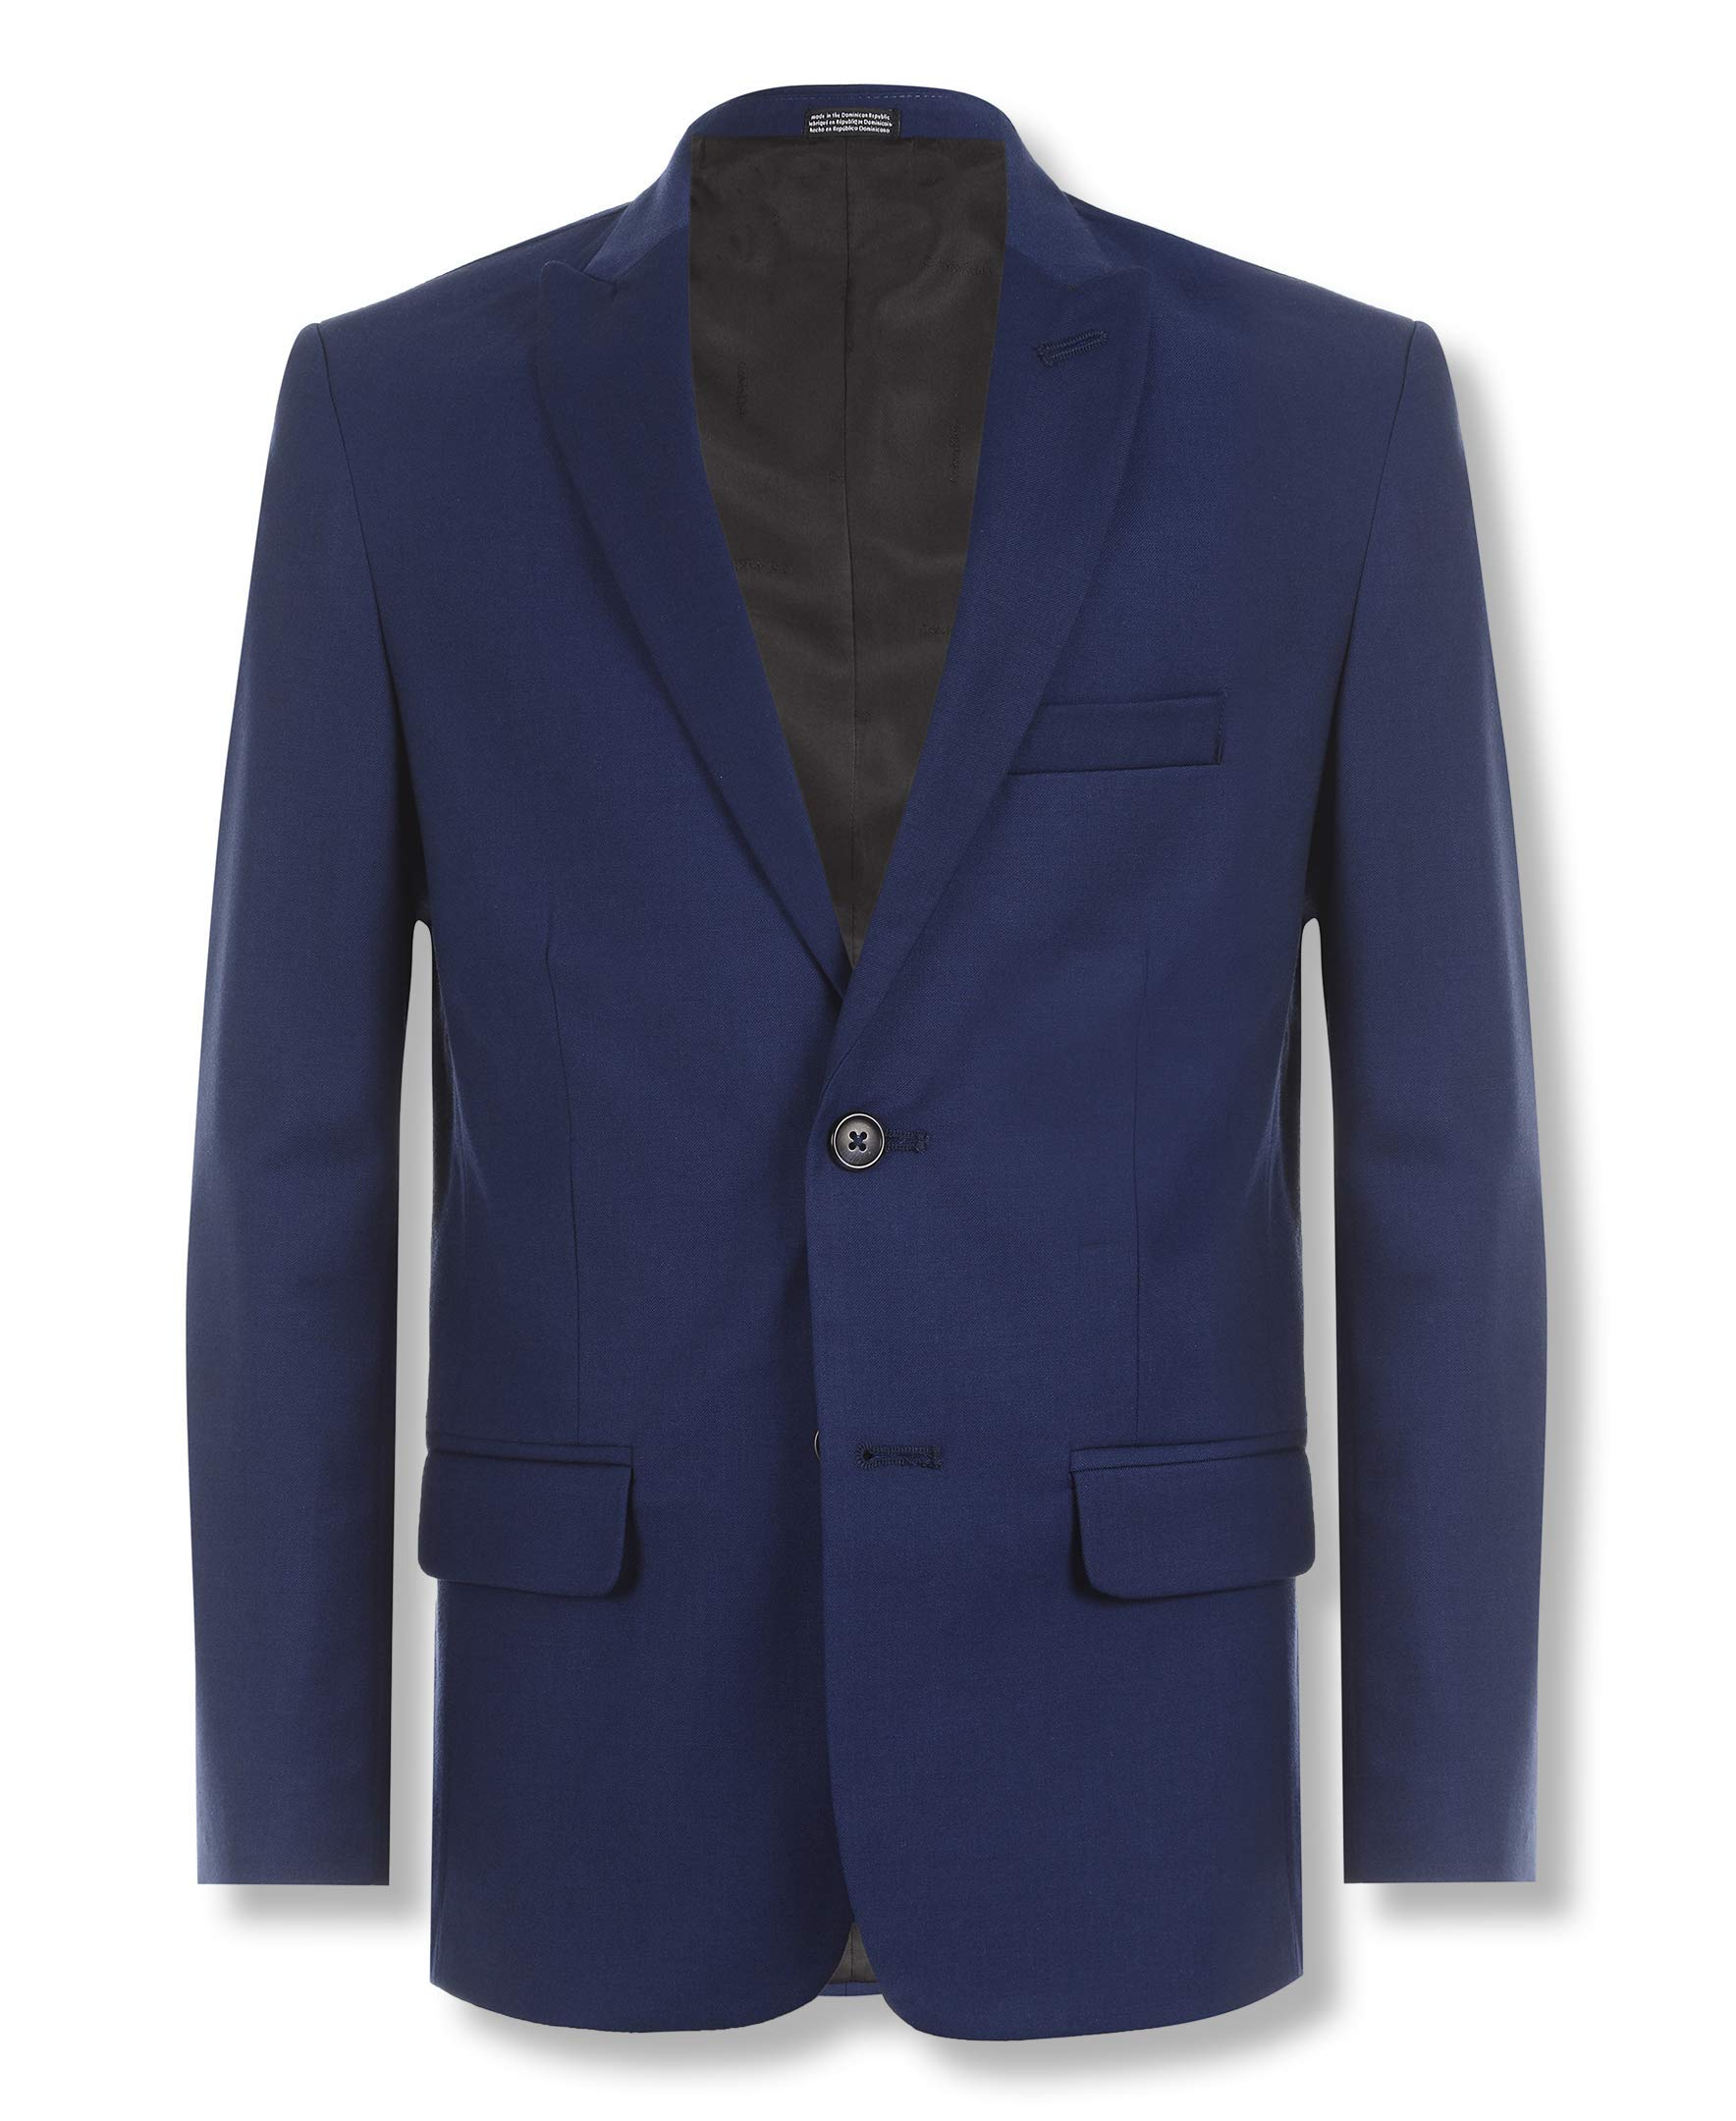 Calvin Klein Big Boys' Solid Blazer Jacket, Infinite Blue, 16